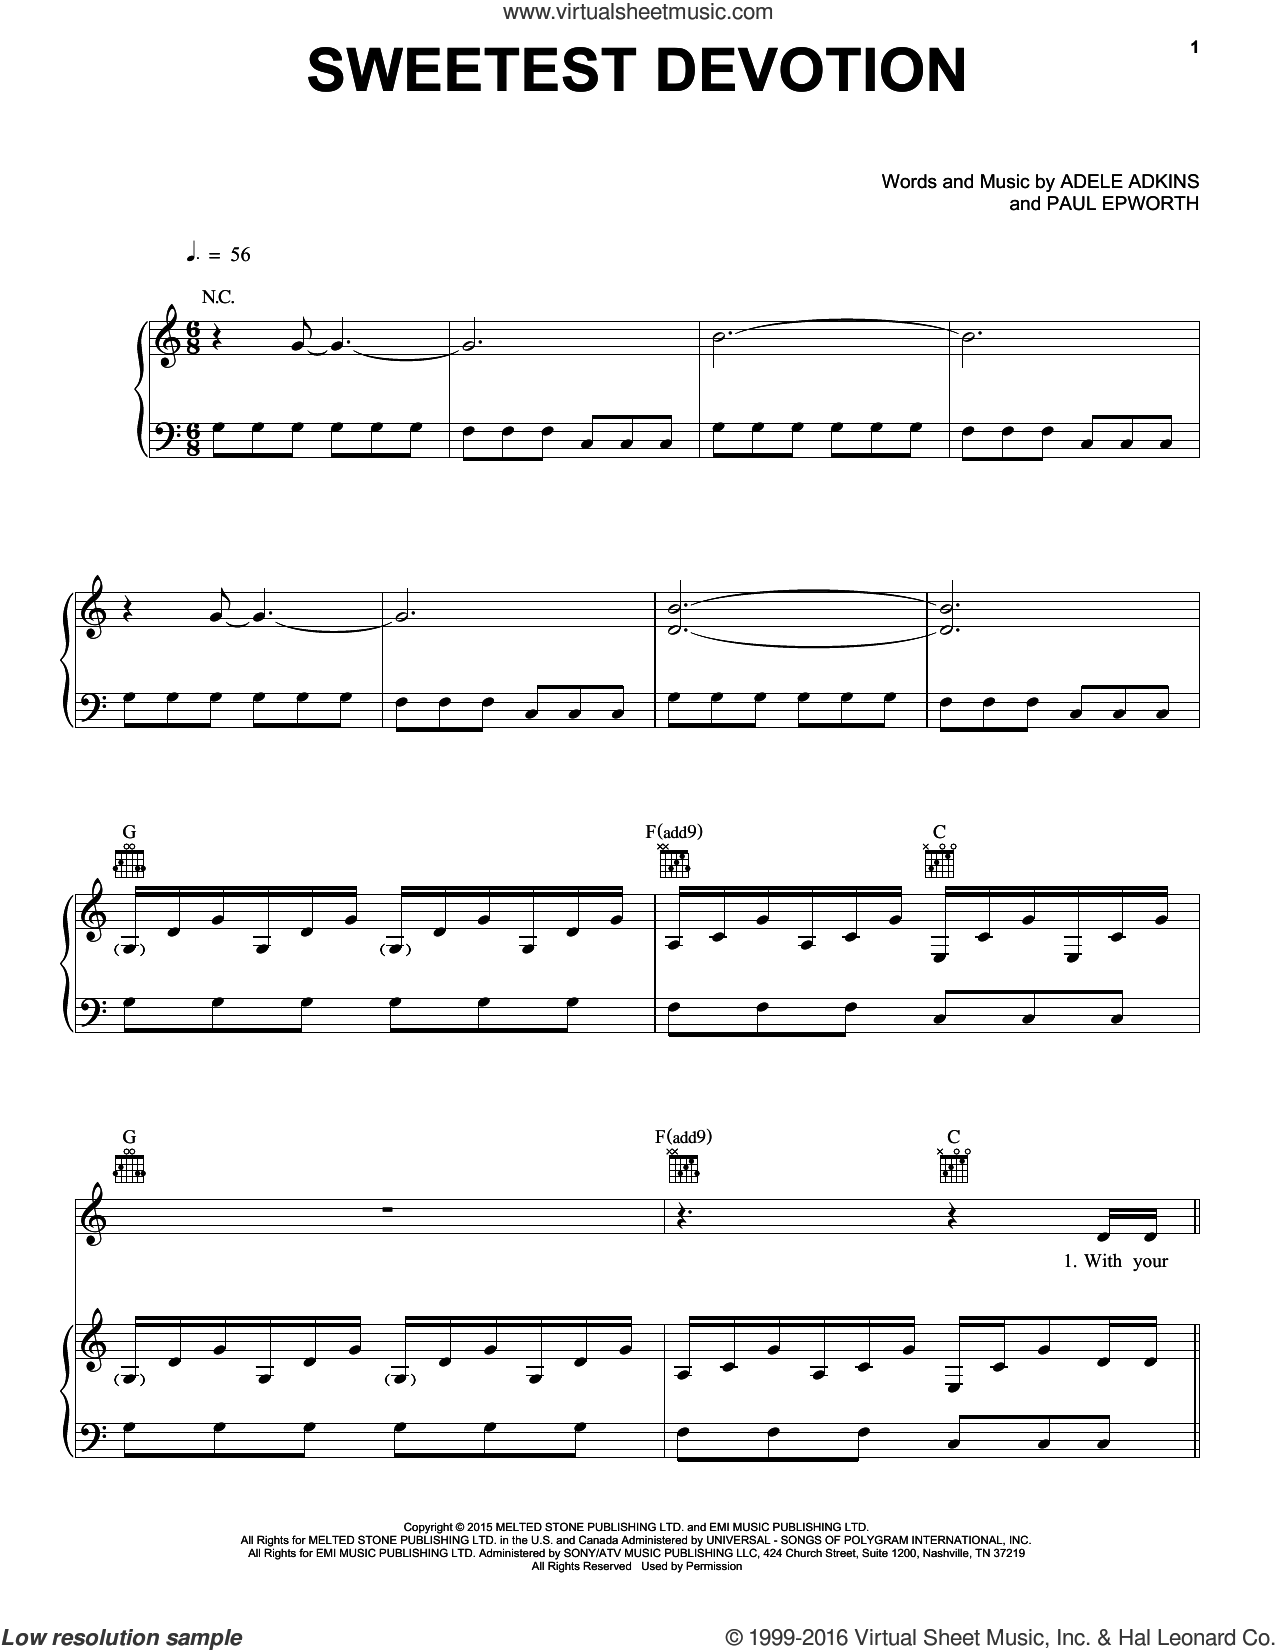 Sweetest Devotion sheet music for voice, piano or guitar by Paul Epworth